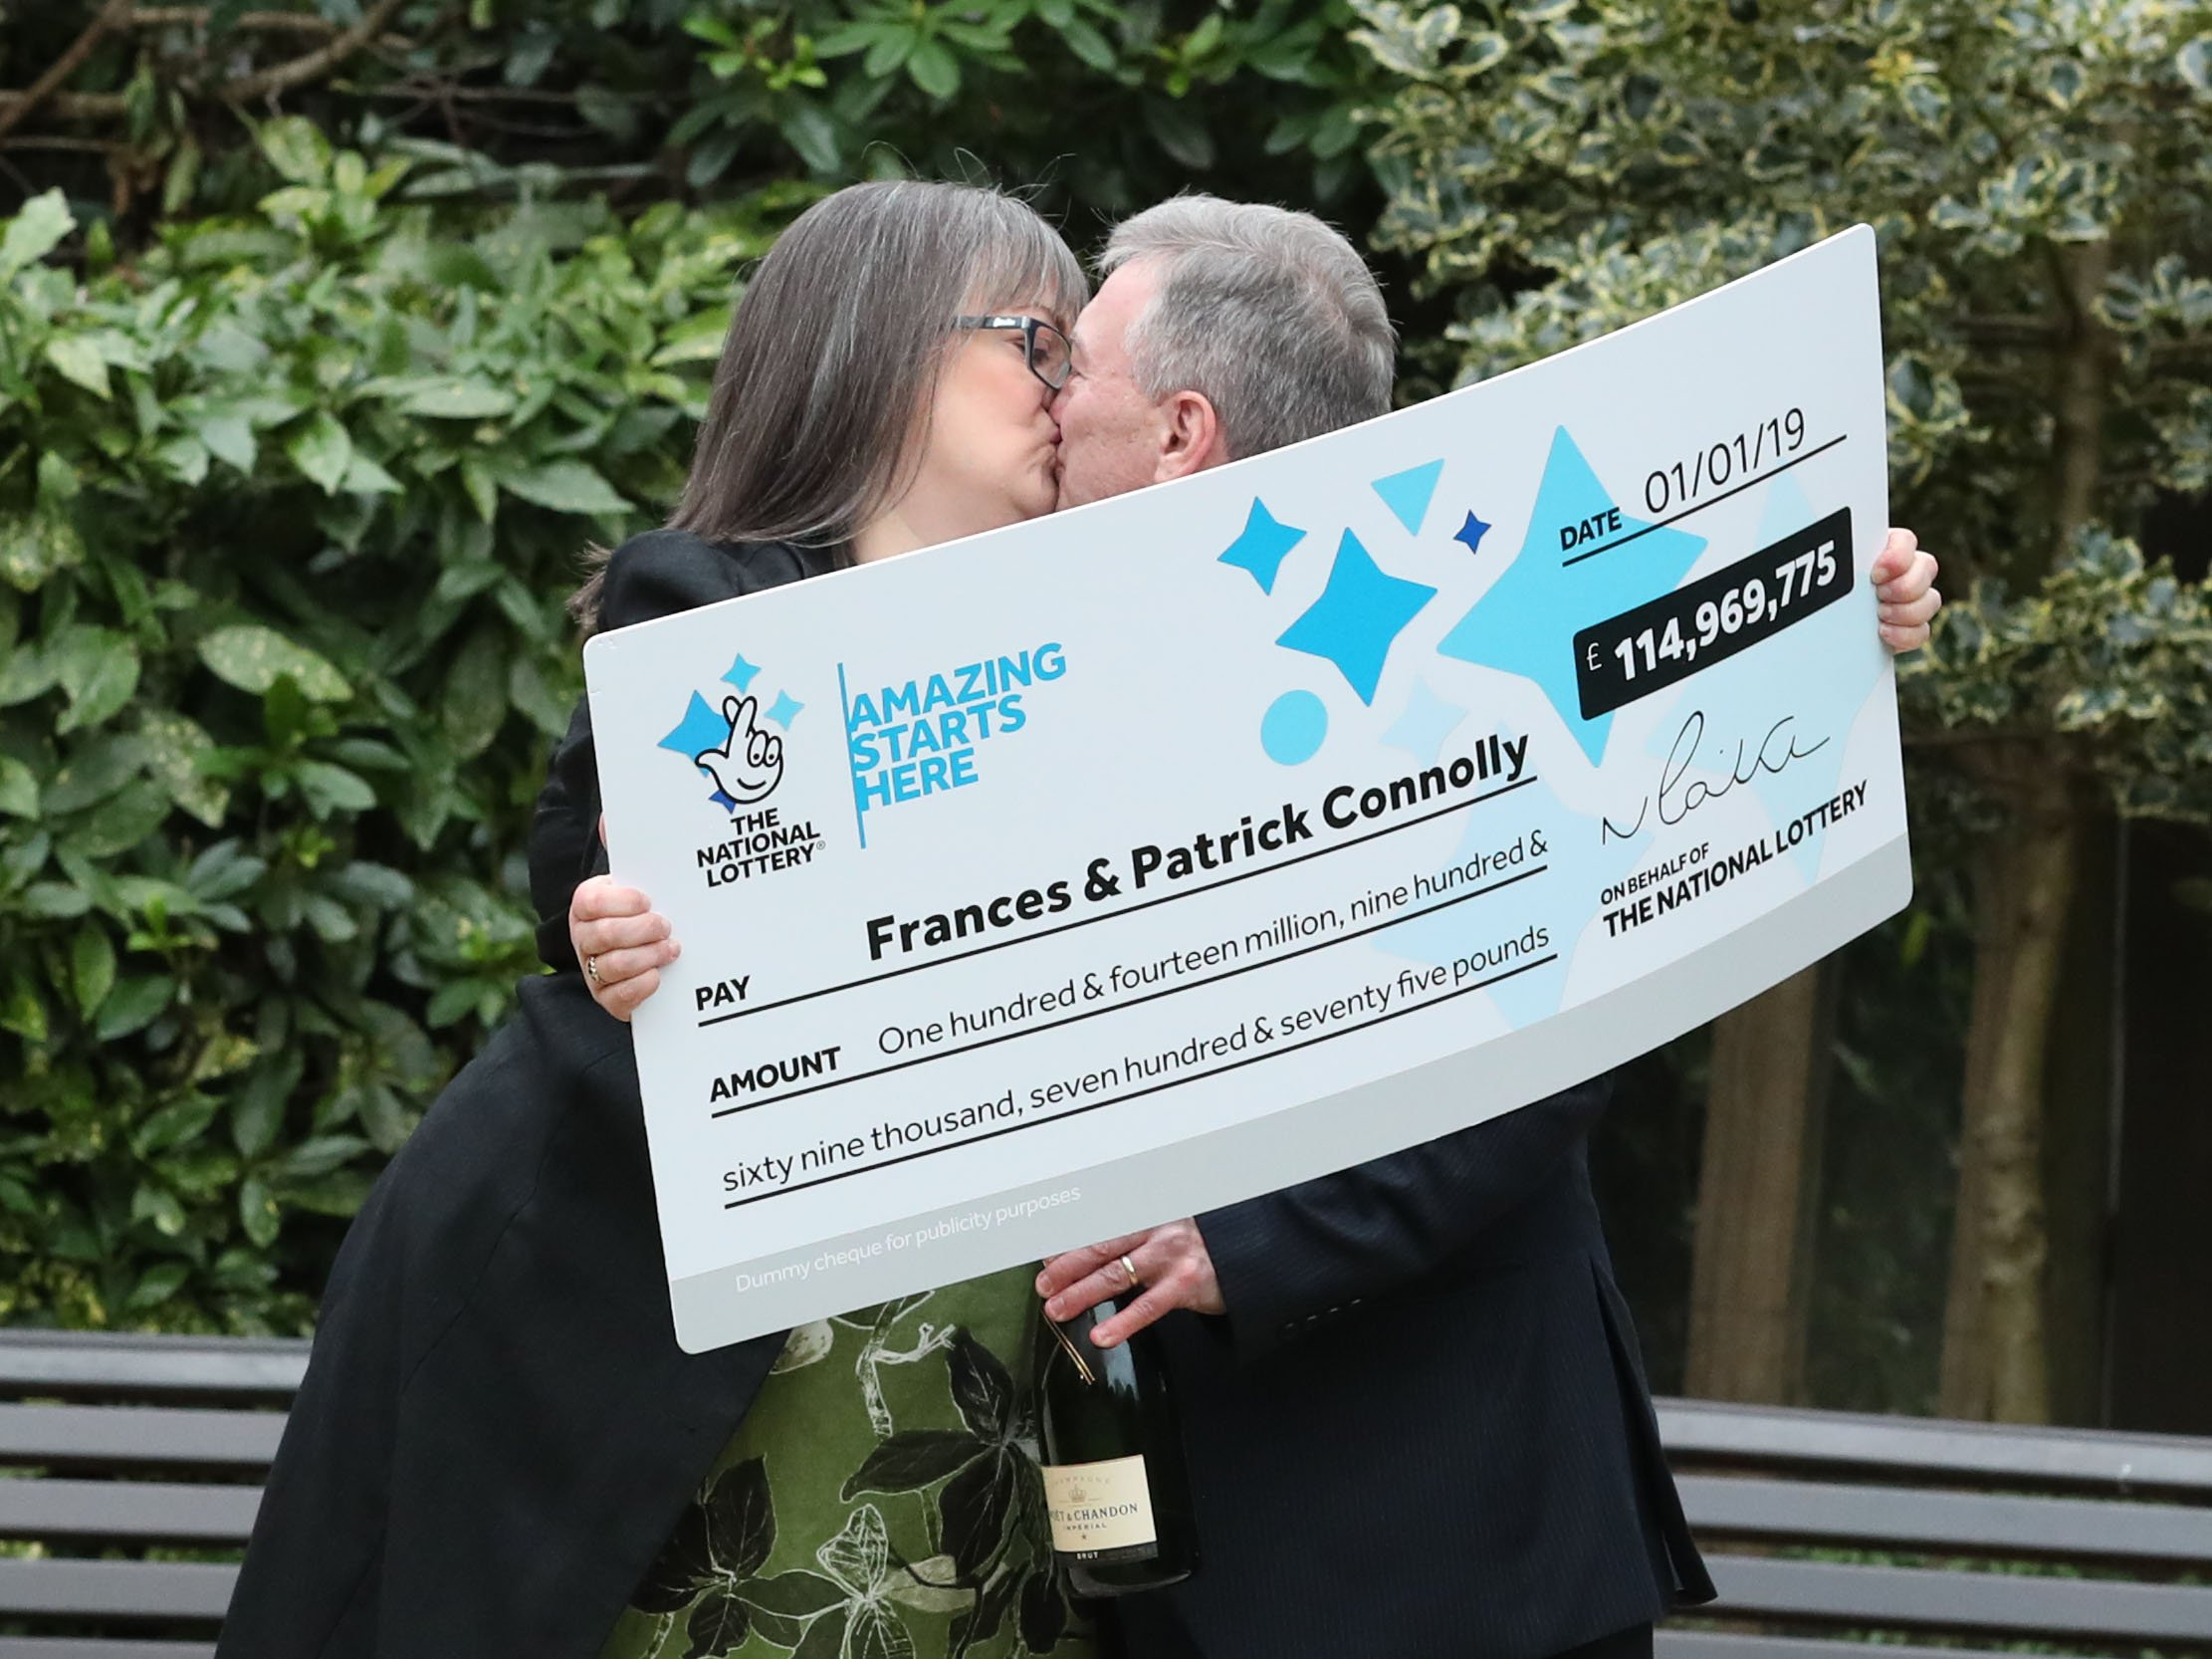 Lotto Euromillions Euromillions Lottery Winners Named As Frances And Patrick Connolly